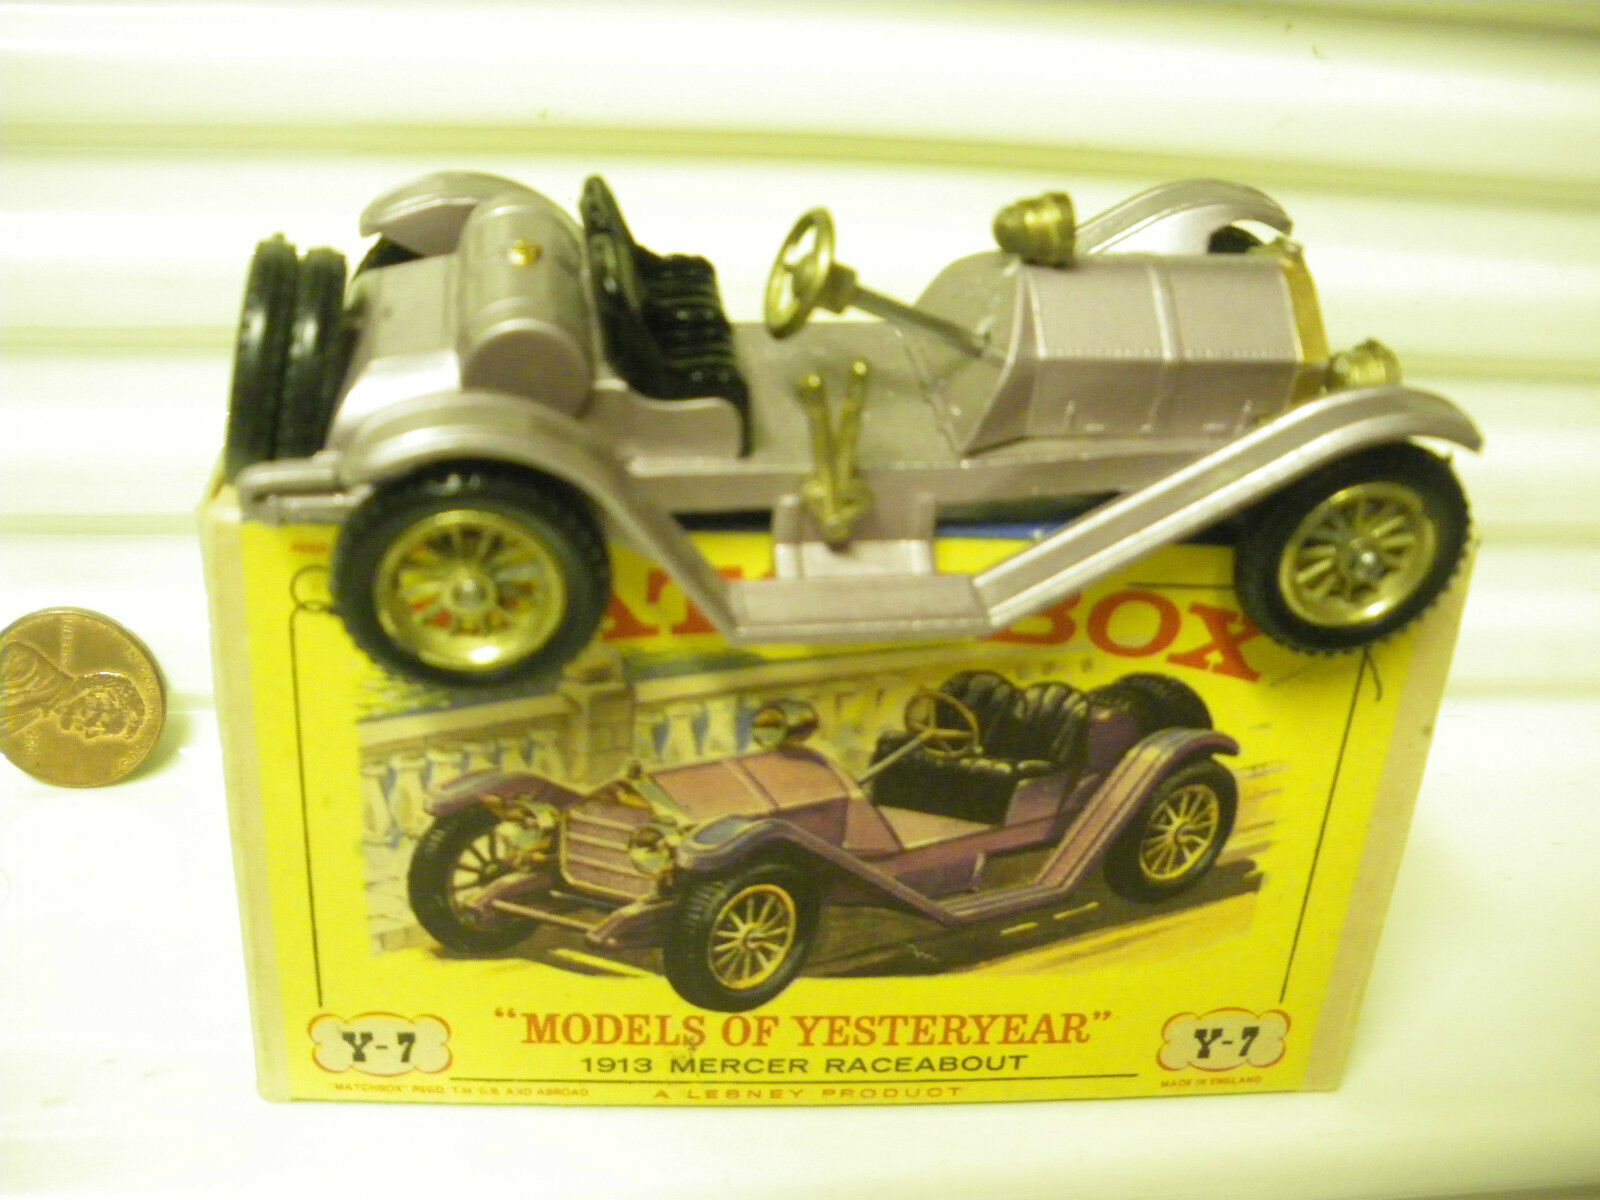 MATCHBOX 1961 Yesteryear Y7 violets 1913 MERCER RACEABOUT TYPE 1 Garde-boue Comme neuf BXD